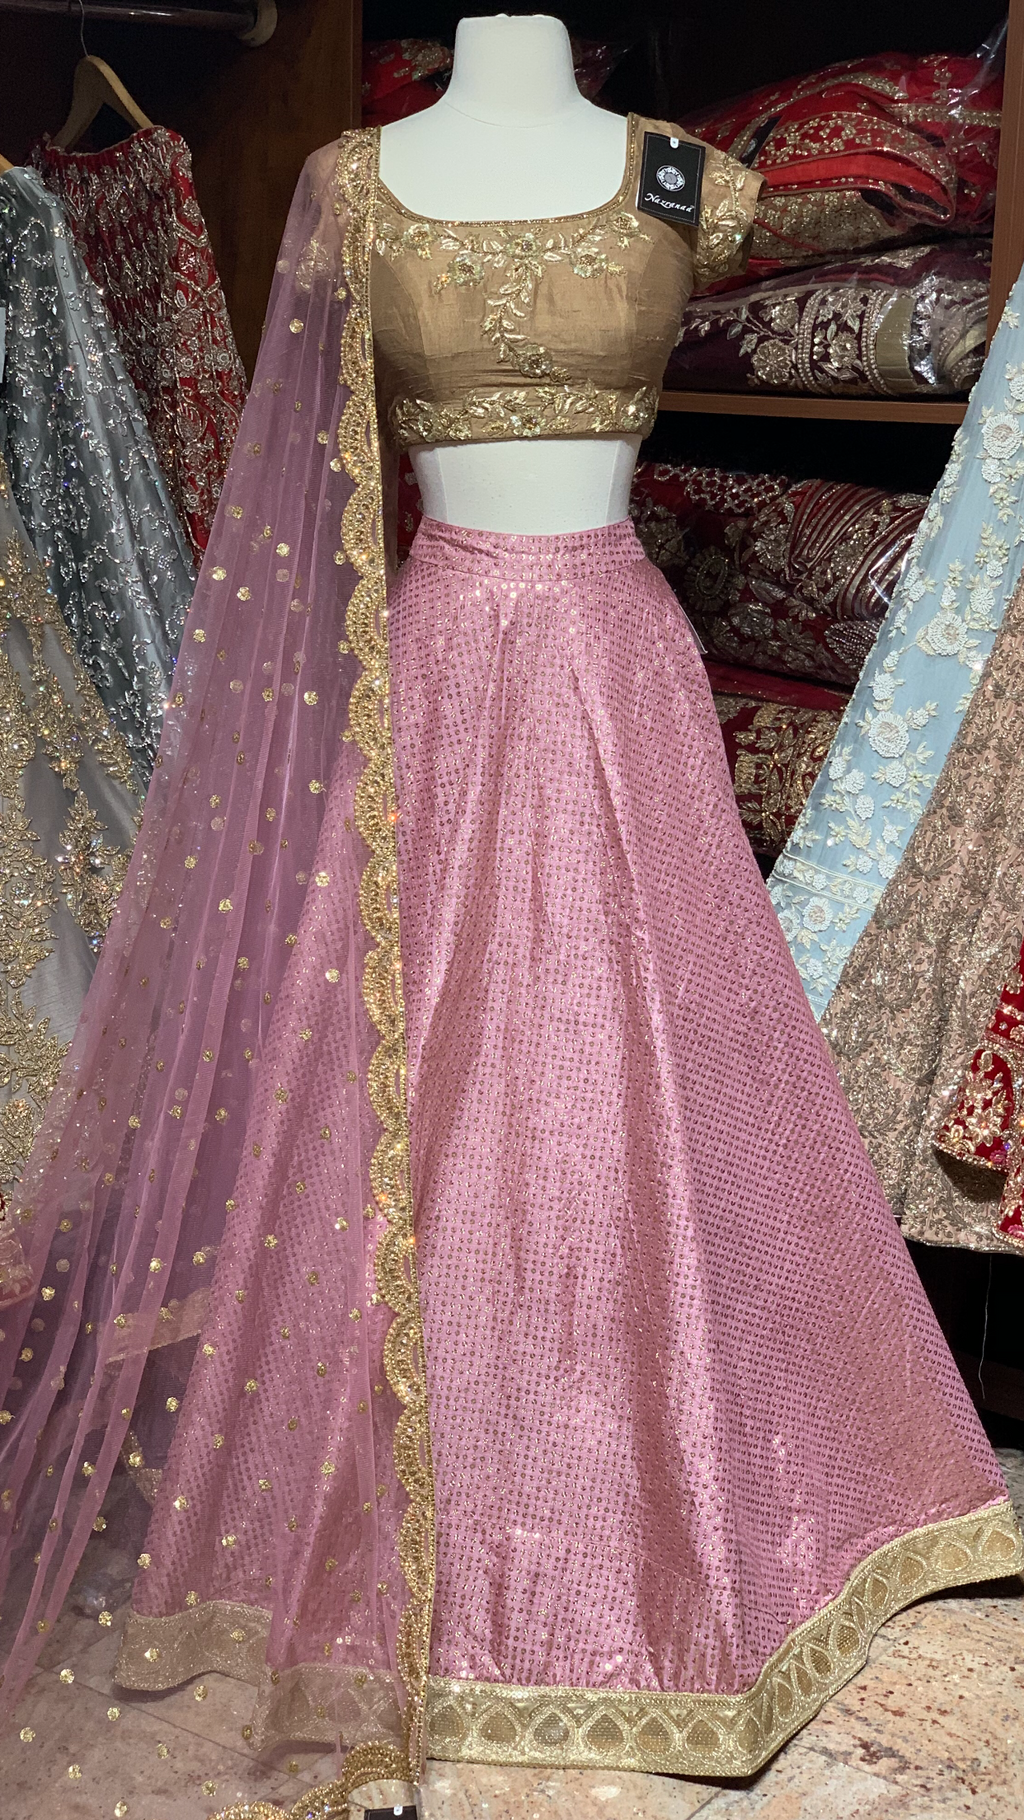 The Zarina lehenga-PW10